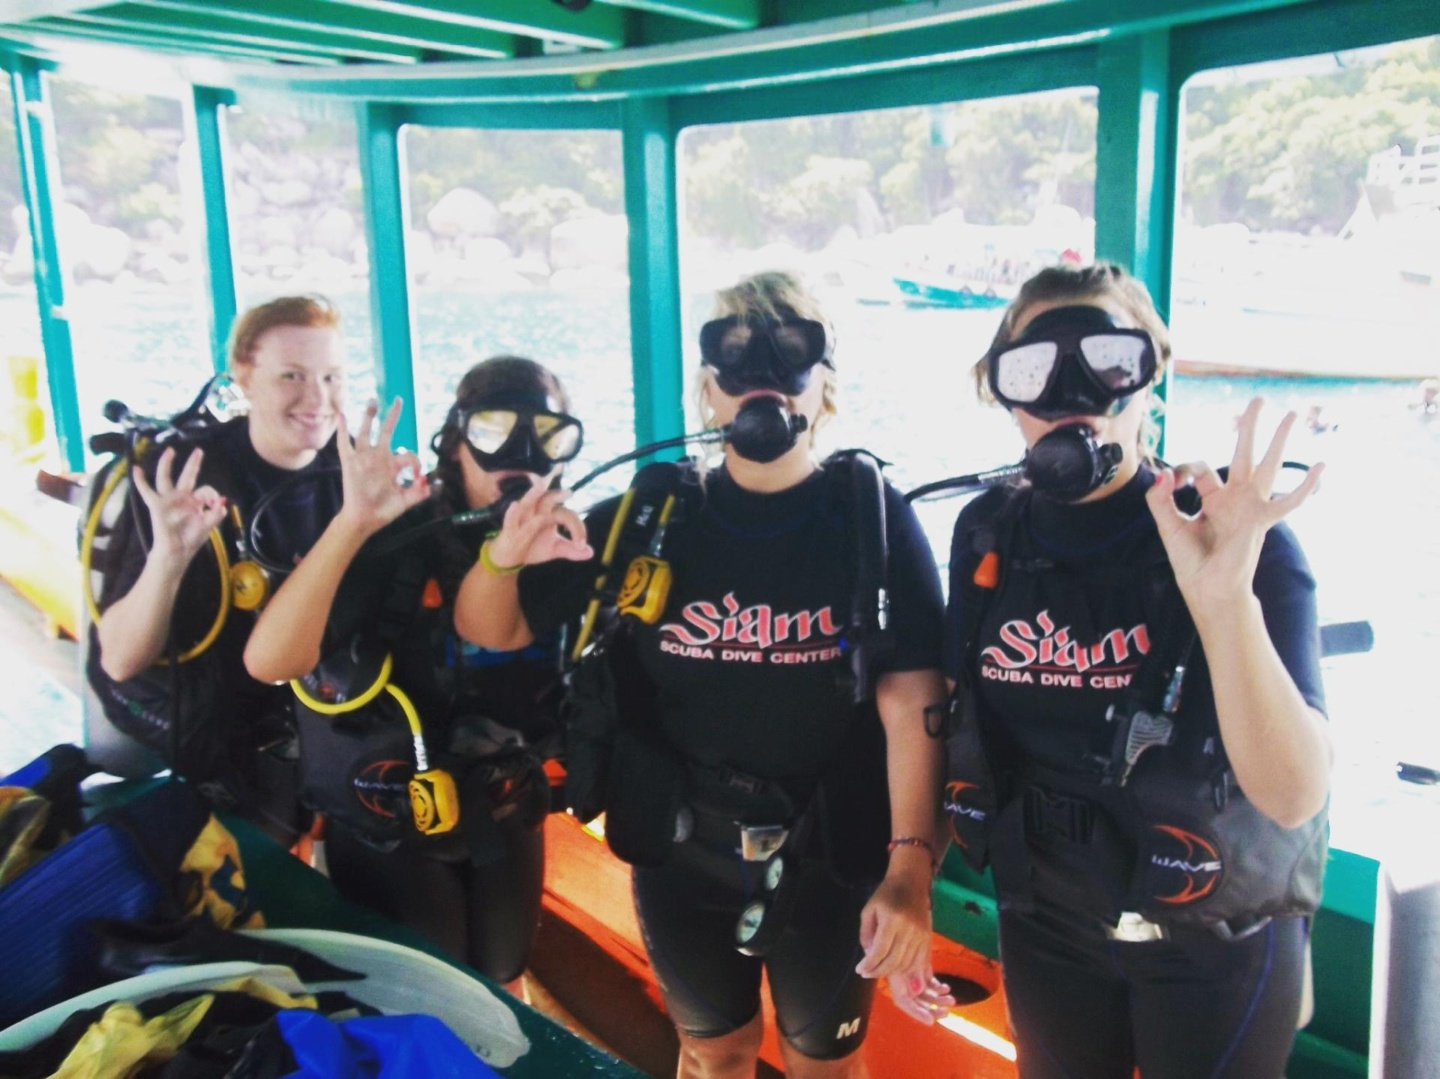 backpacking asia stop fivebackpacking asia stop five thailand koh tao thailand koh tao